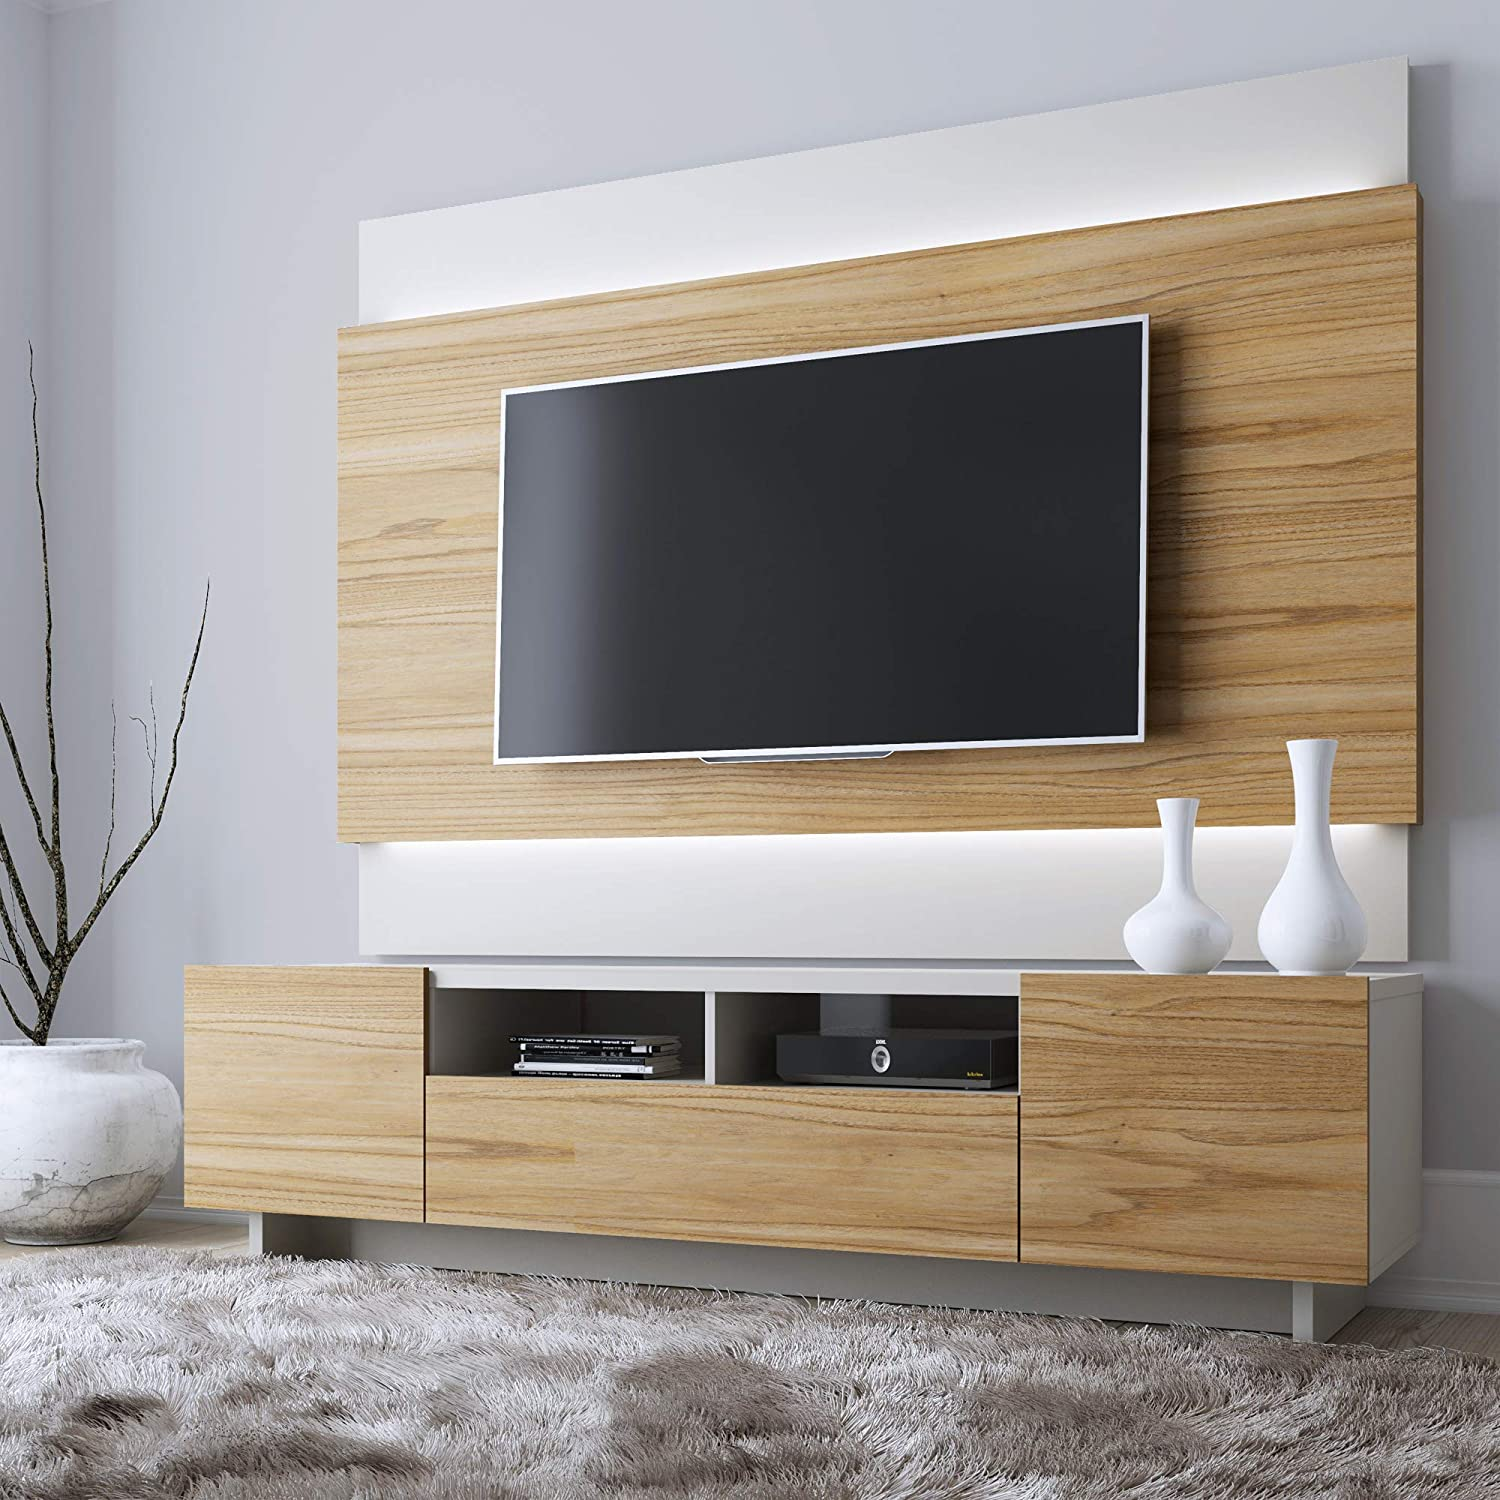 Manhattan Comfort Brill Modern Living Room Television Stand and TV Panel  Set with LED Lights, Cinnamon and Off White